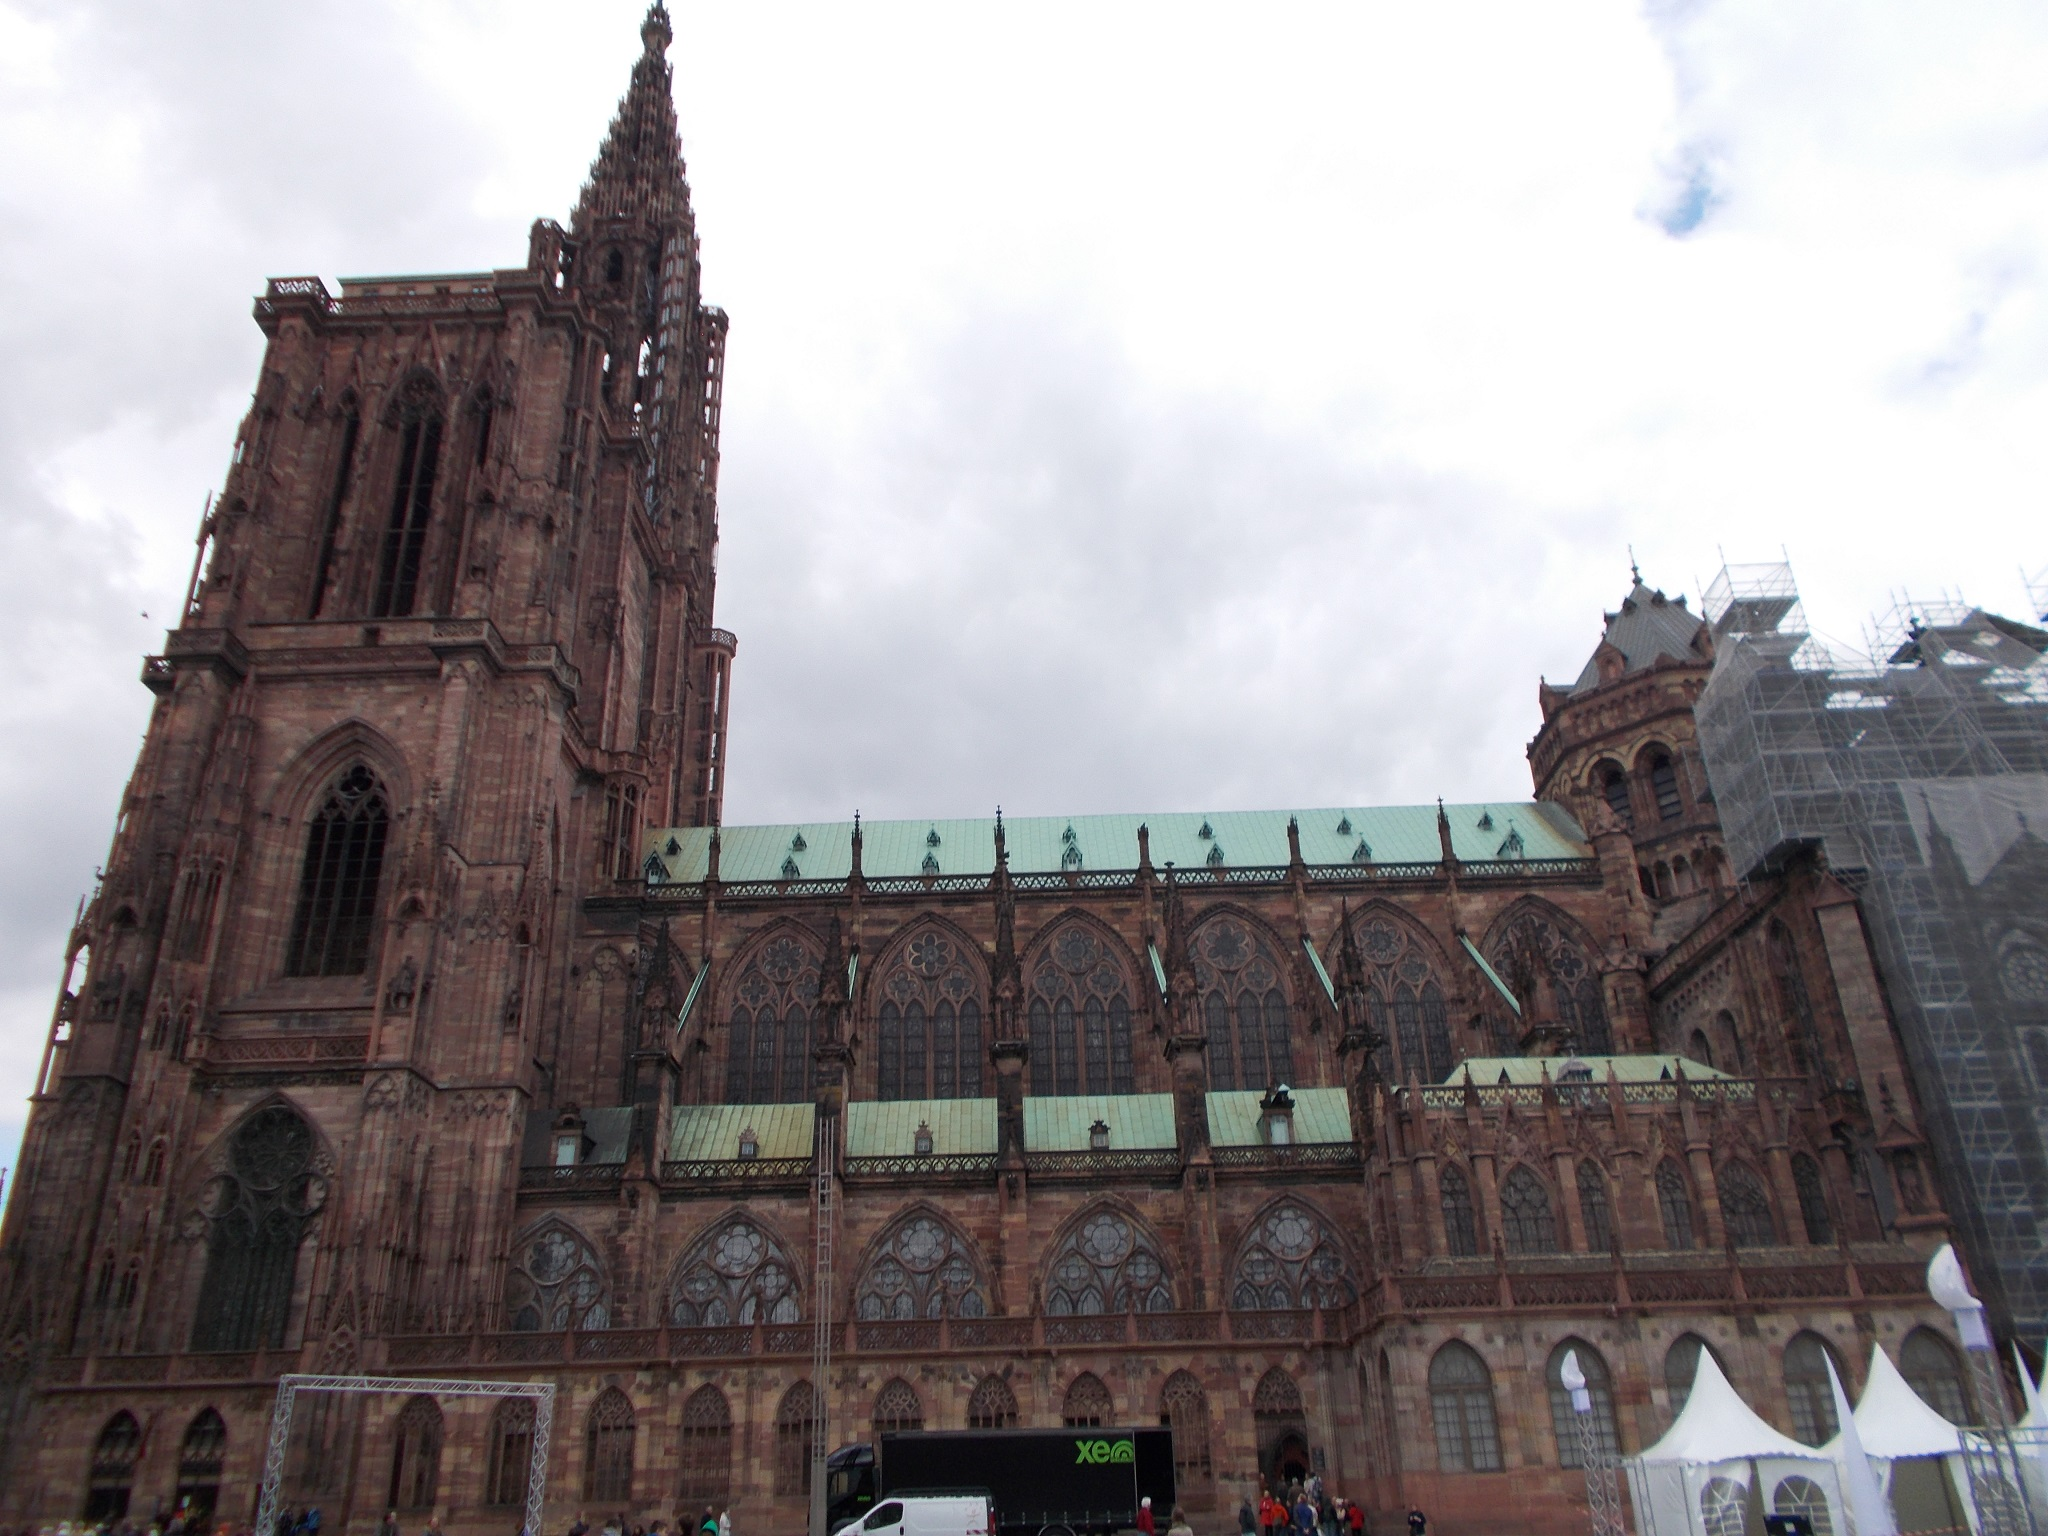 A large cathedral, photographed from the side.